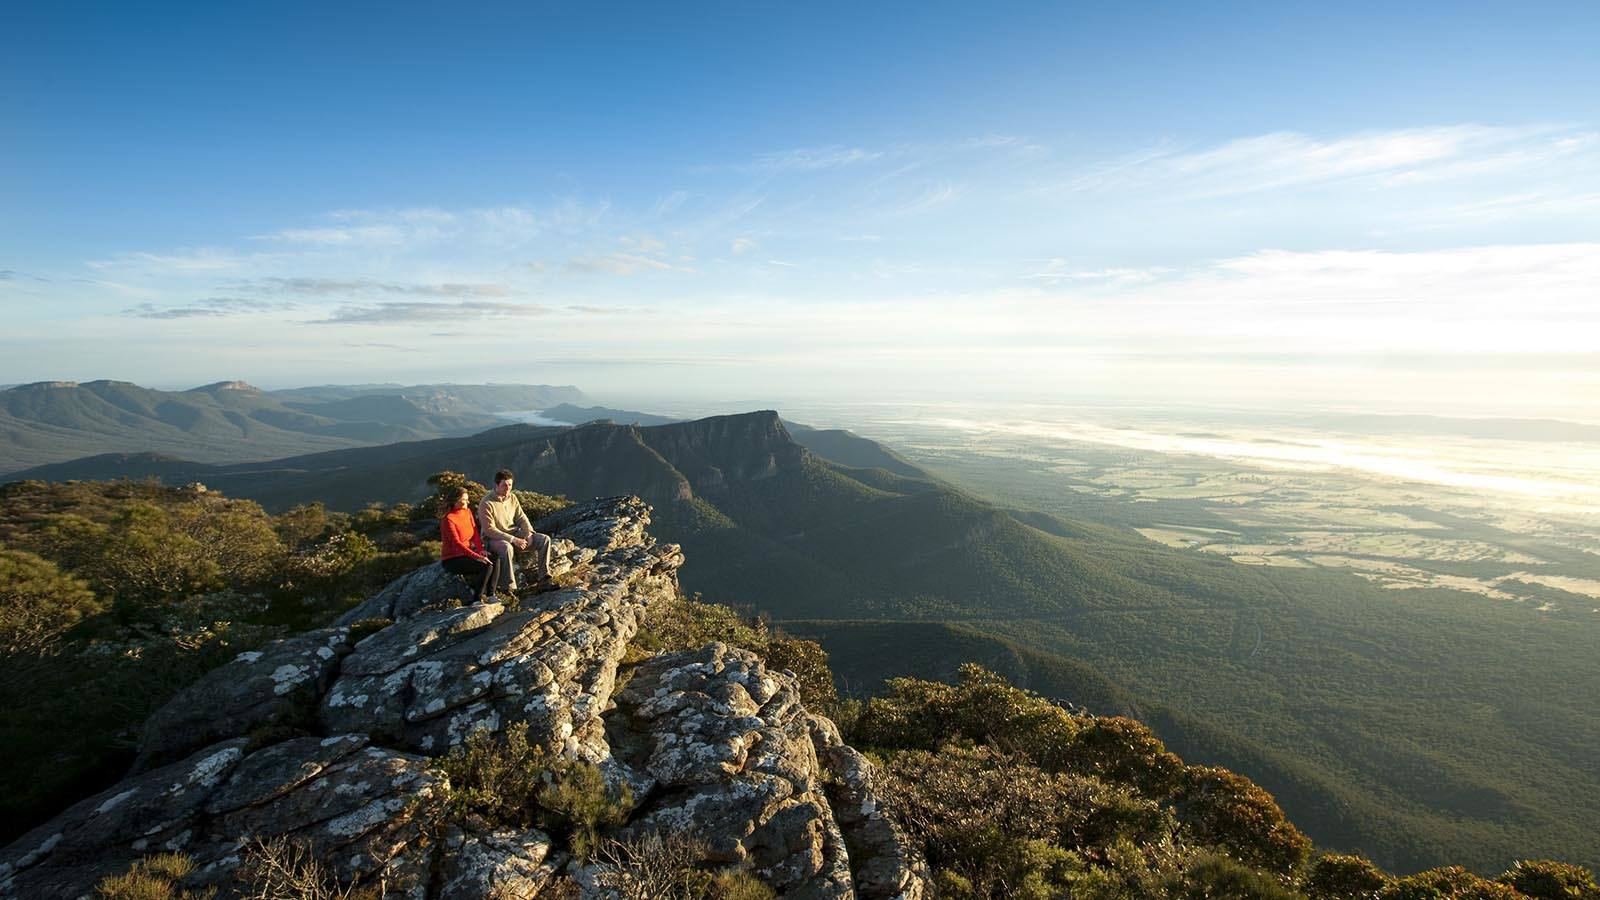 Boronia Peak, Mount William, Grampians, Victoria, Australia